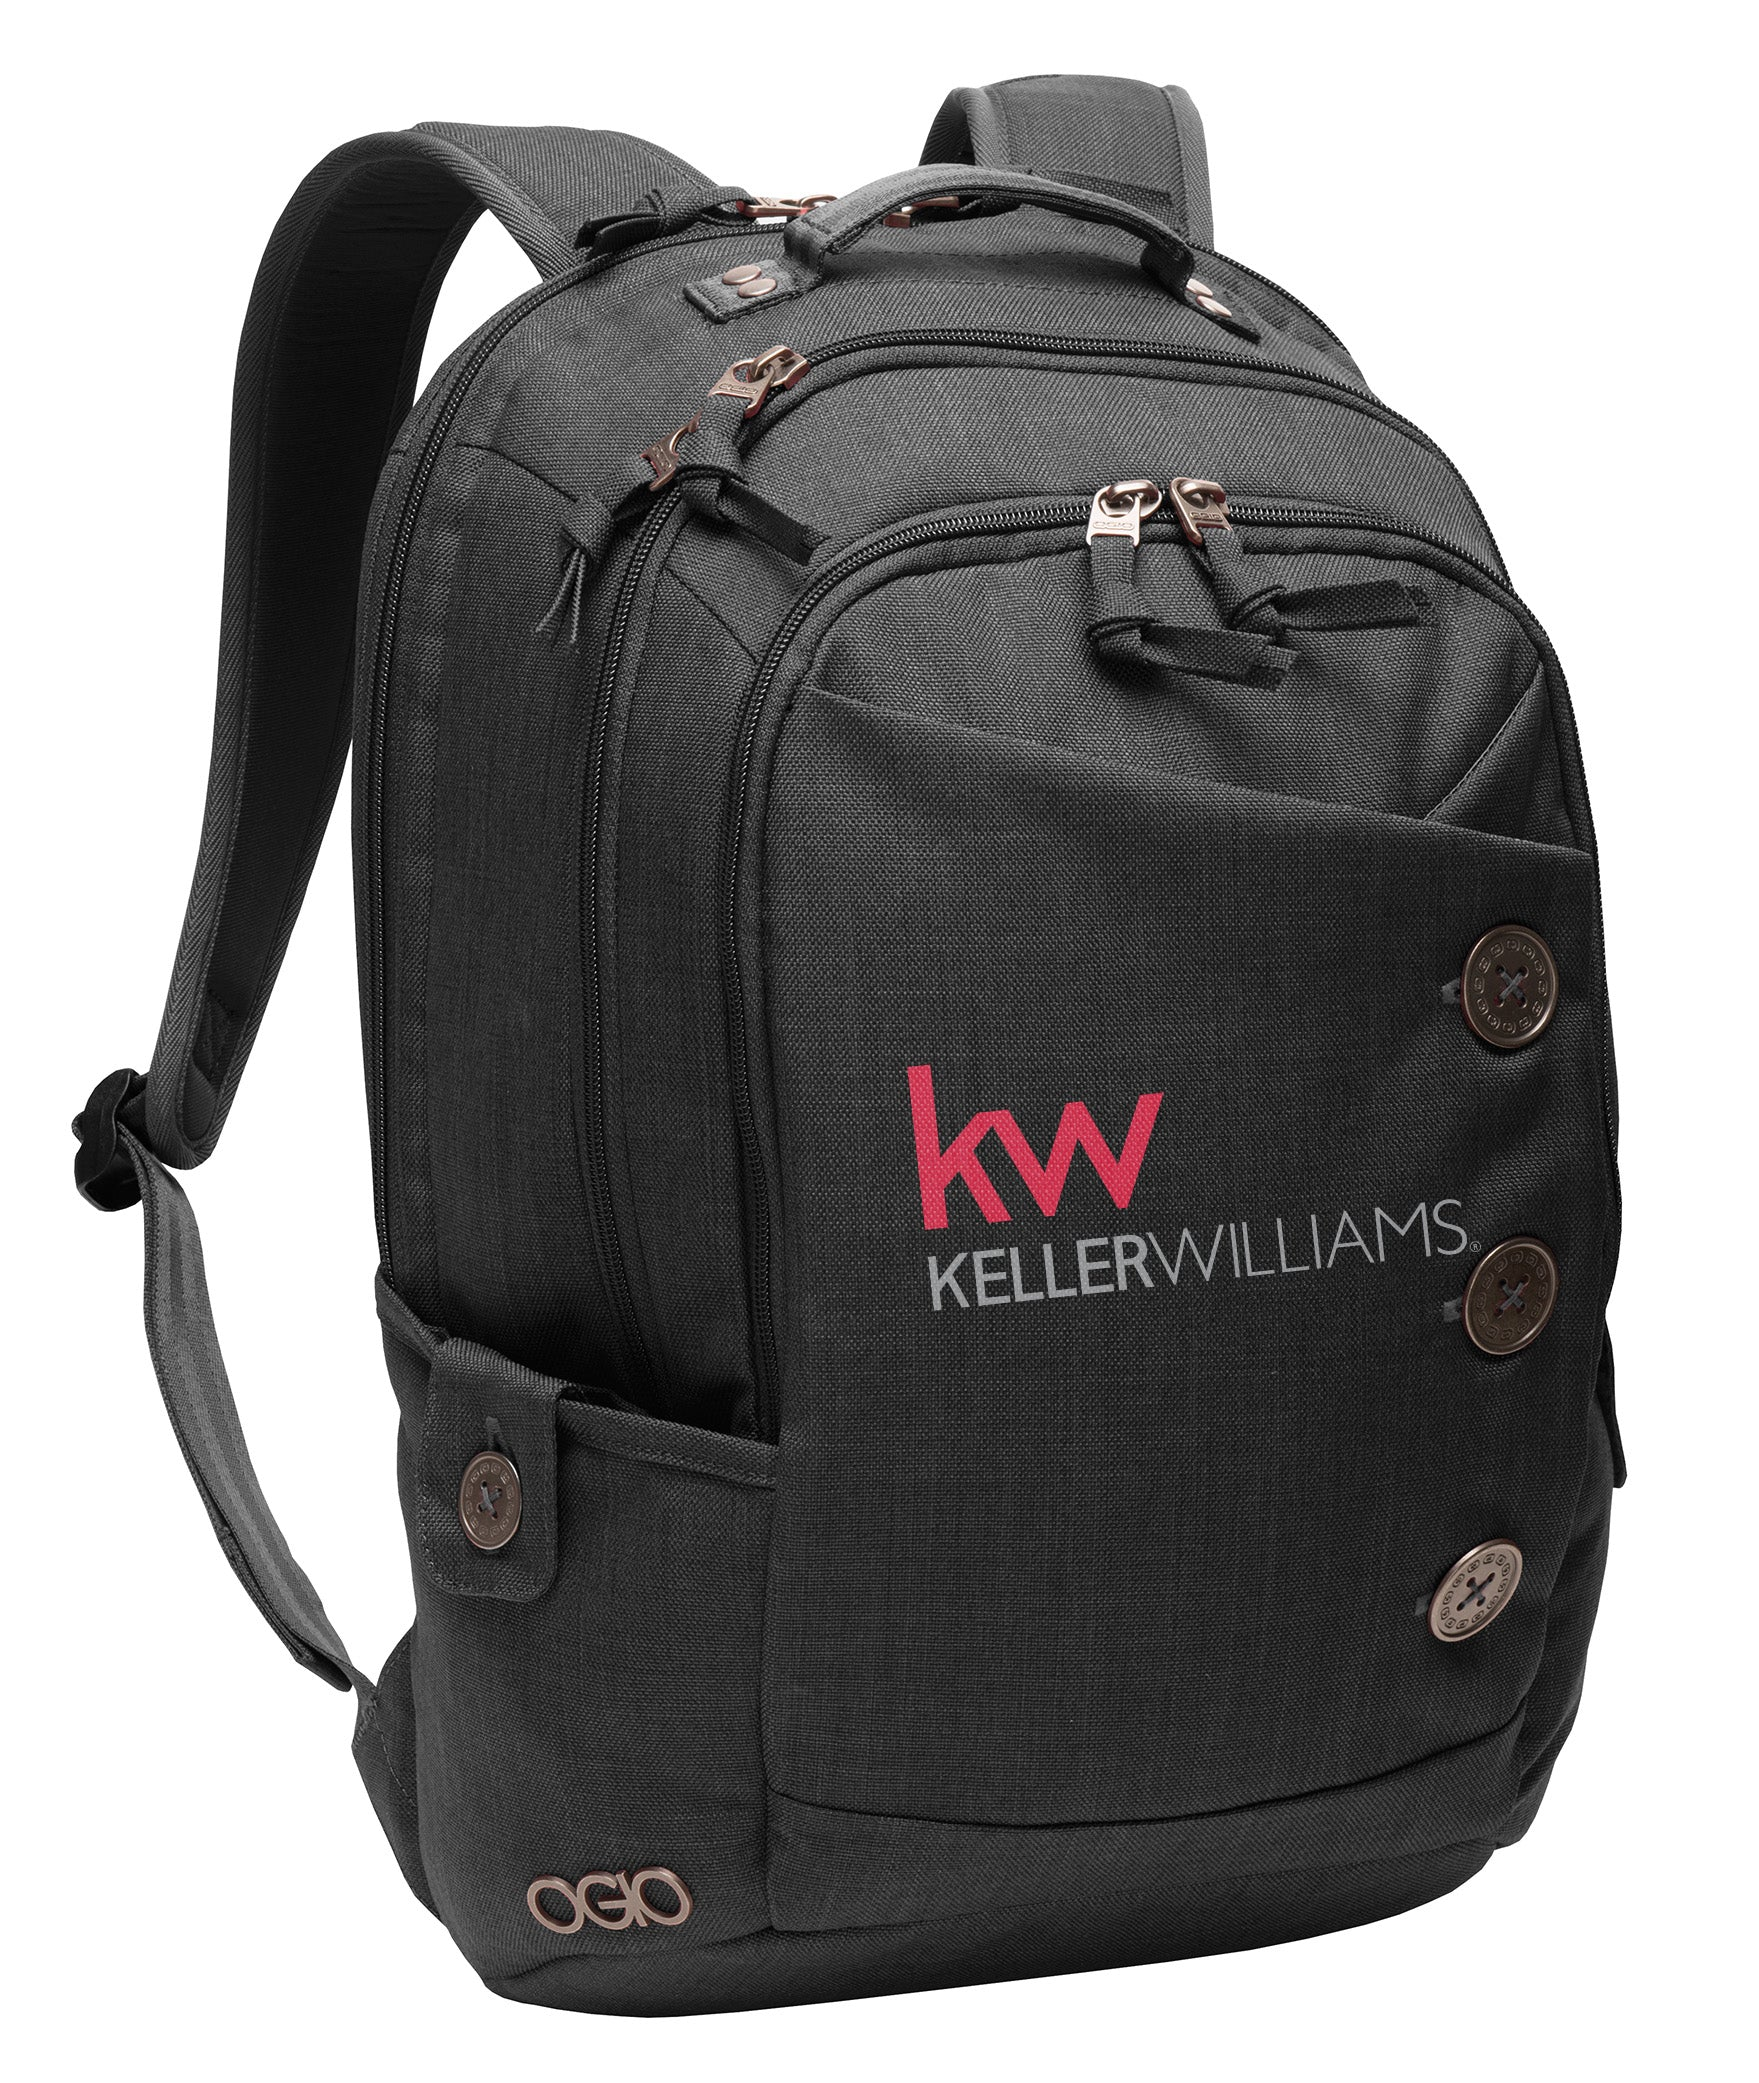 KW OGIO Melrose Backpack